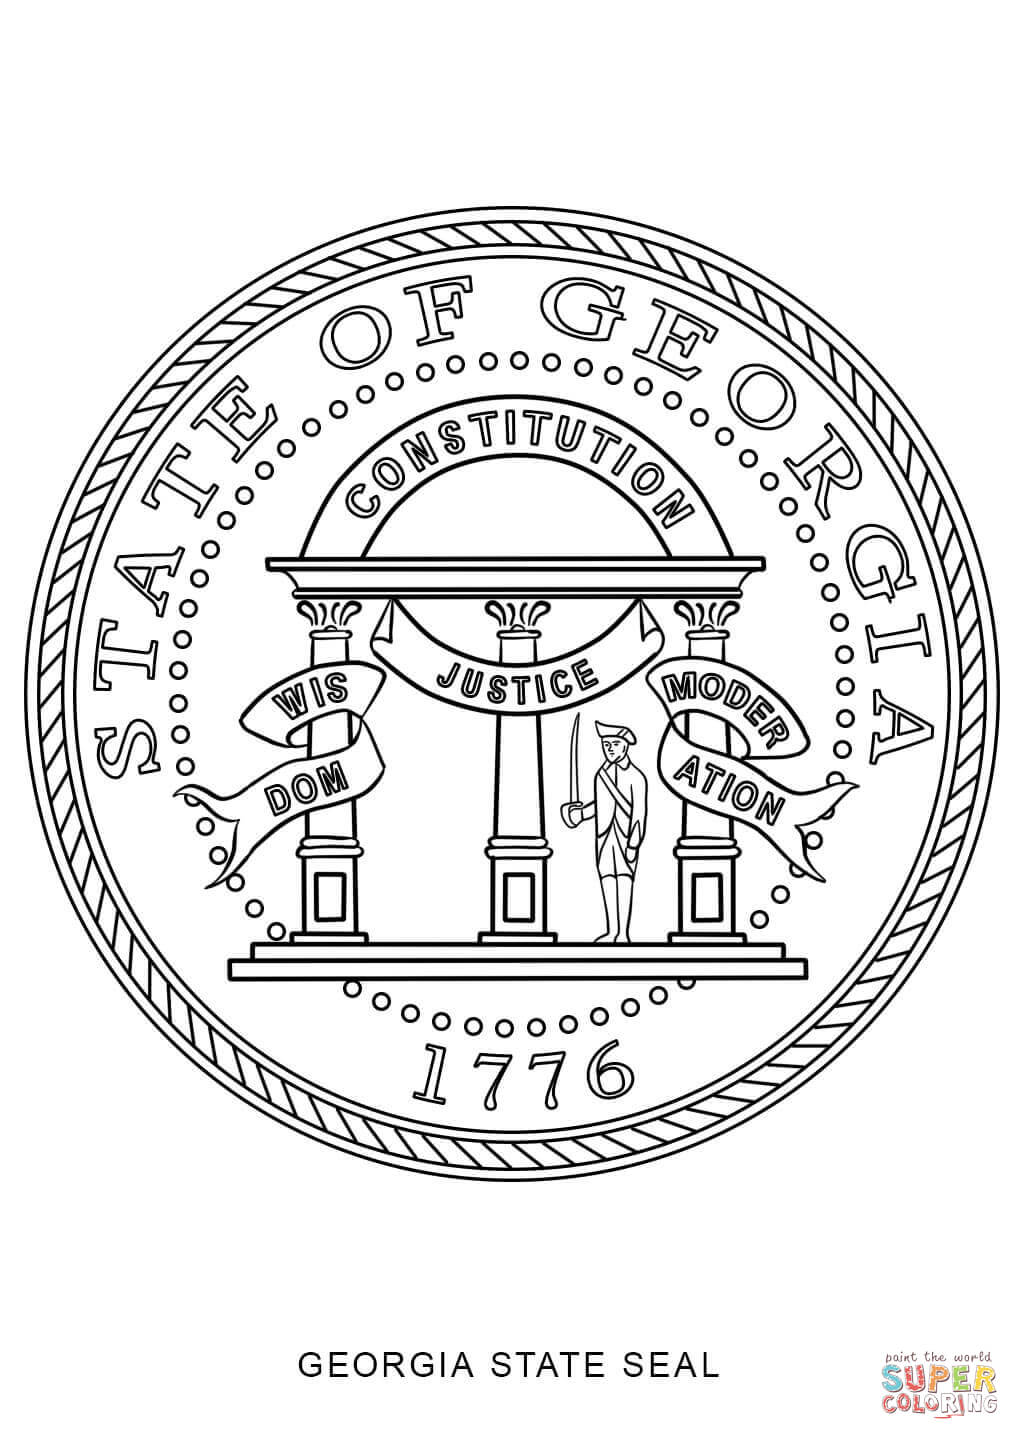 Washington state seal coloring page coloring pages for Arizona state seal coloring page